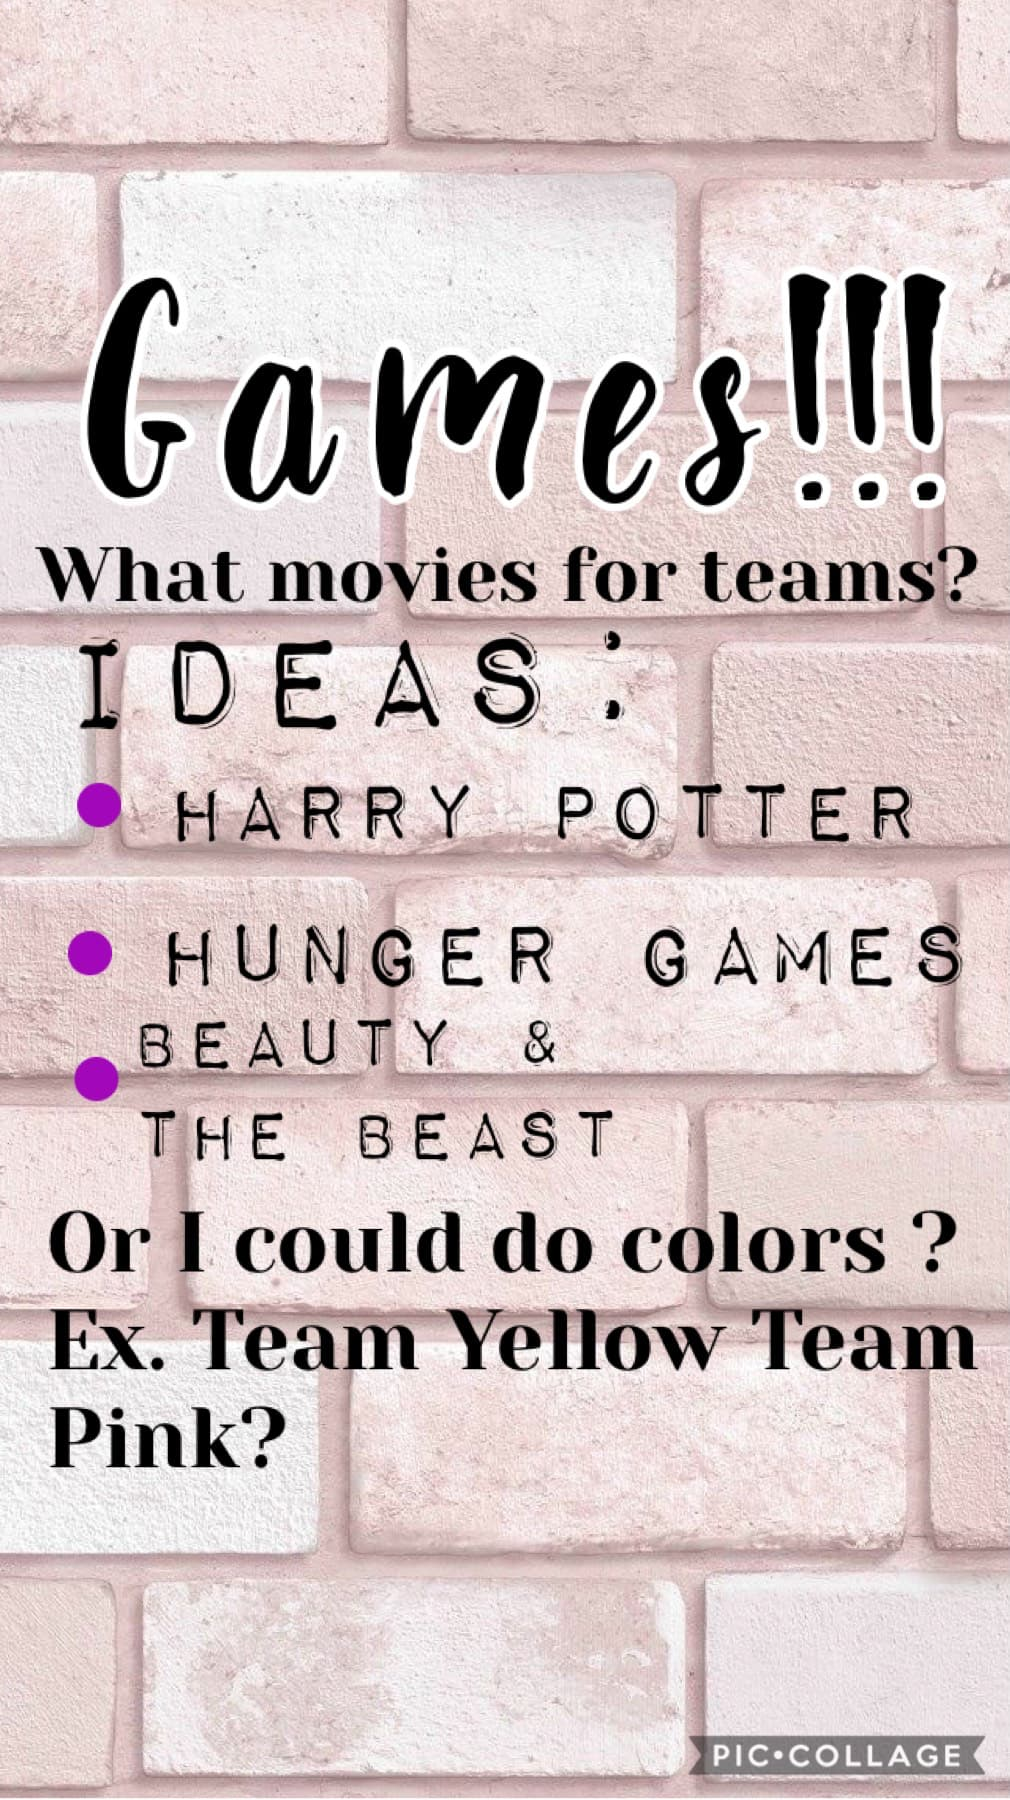 🎨TAP🎨 Comment what movies I should do!!  Or comment if you like the colors idea better! If you like the colors comment 4 of your favorite colors!